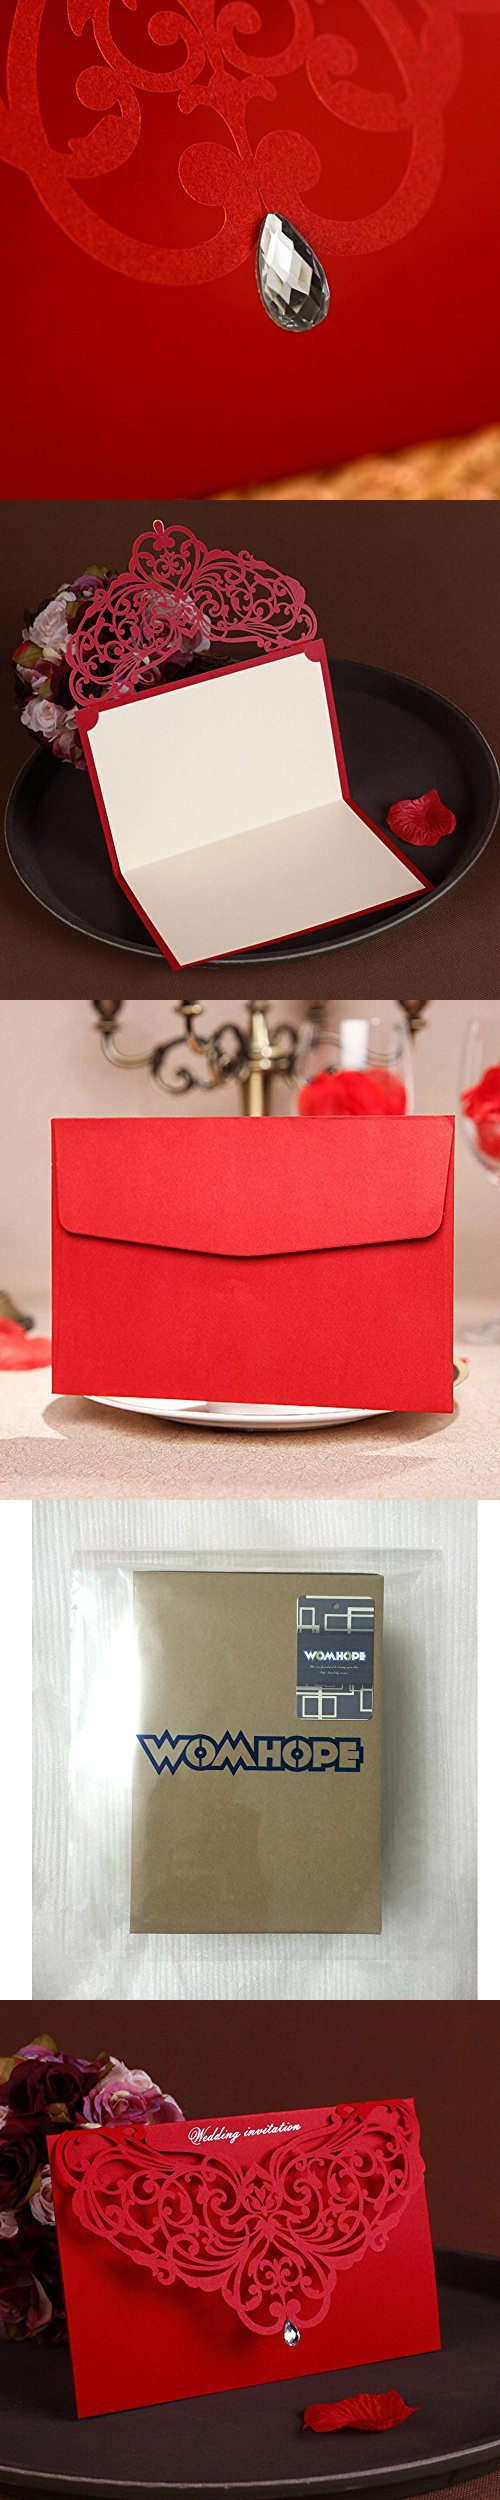 WOMHOPE® 50 Pcs - Classic Red Color Laser Cut Lace Card Wedding ...